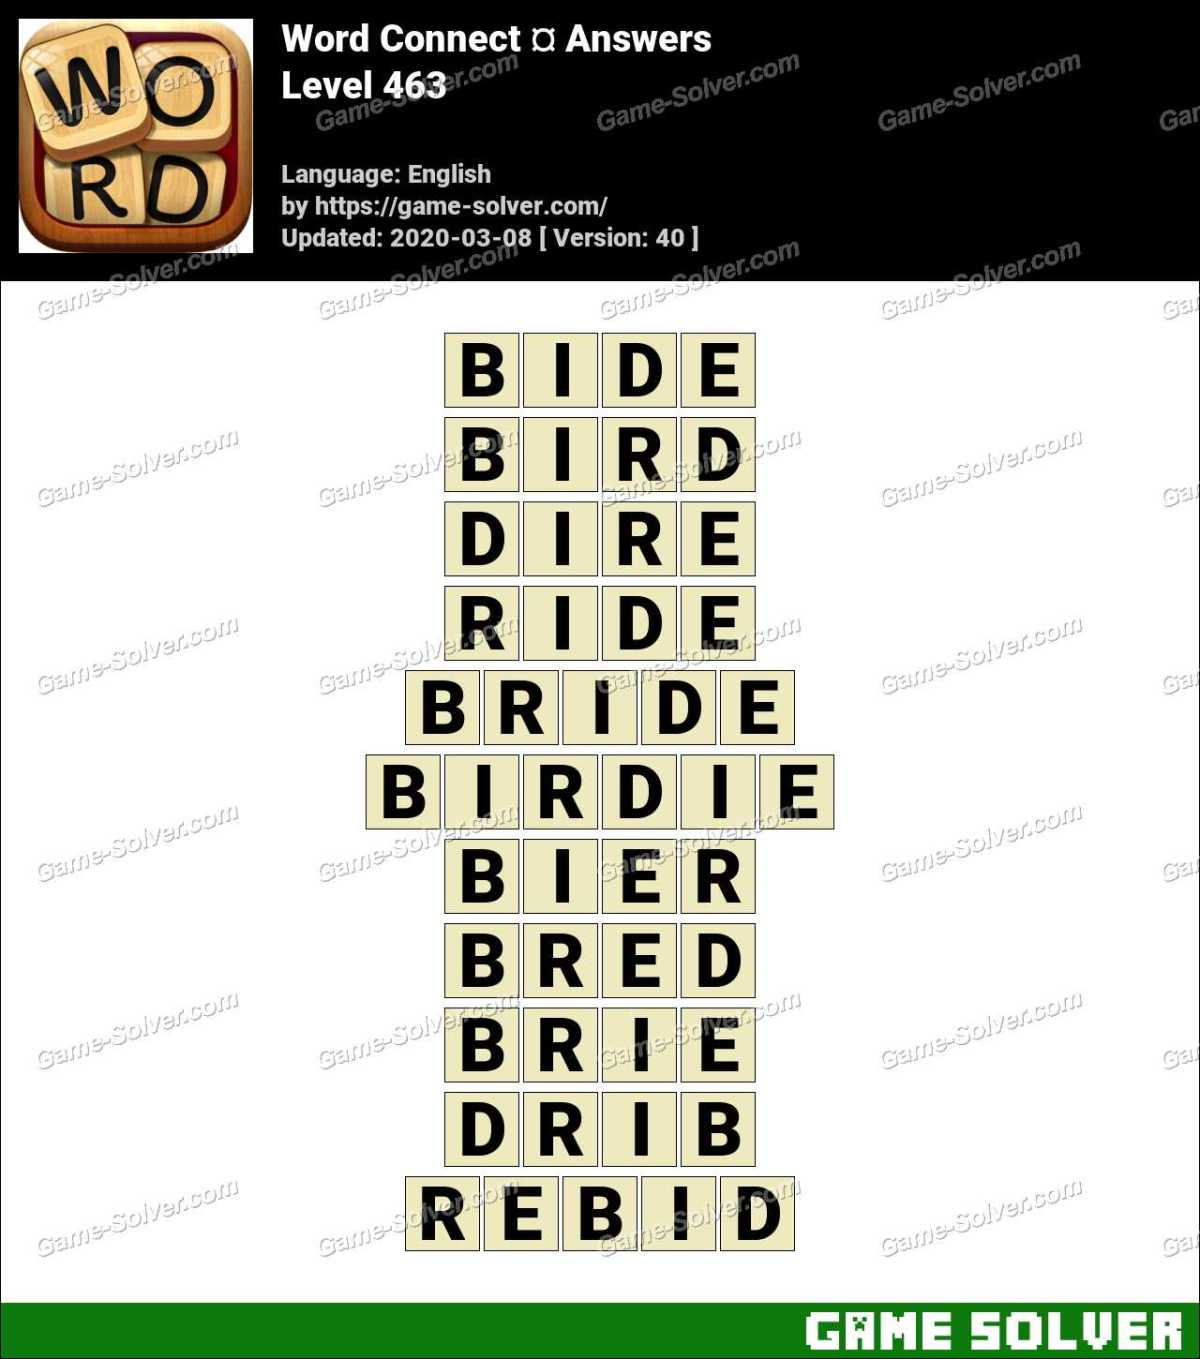 Word Connect Level 463 Answers